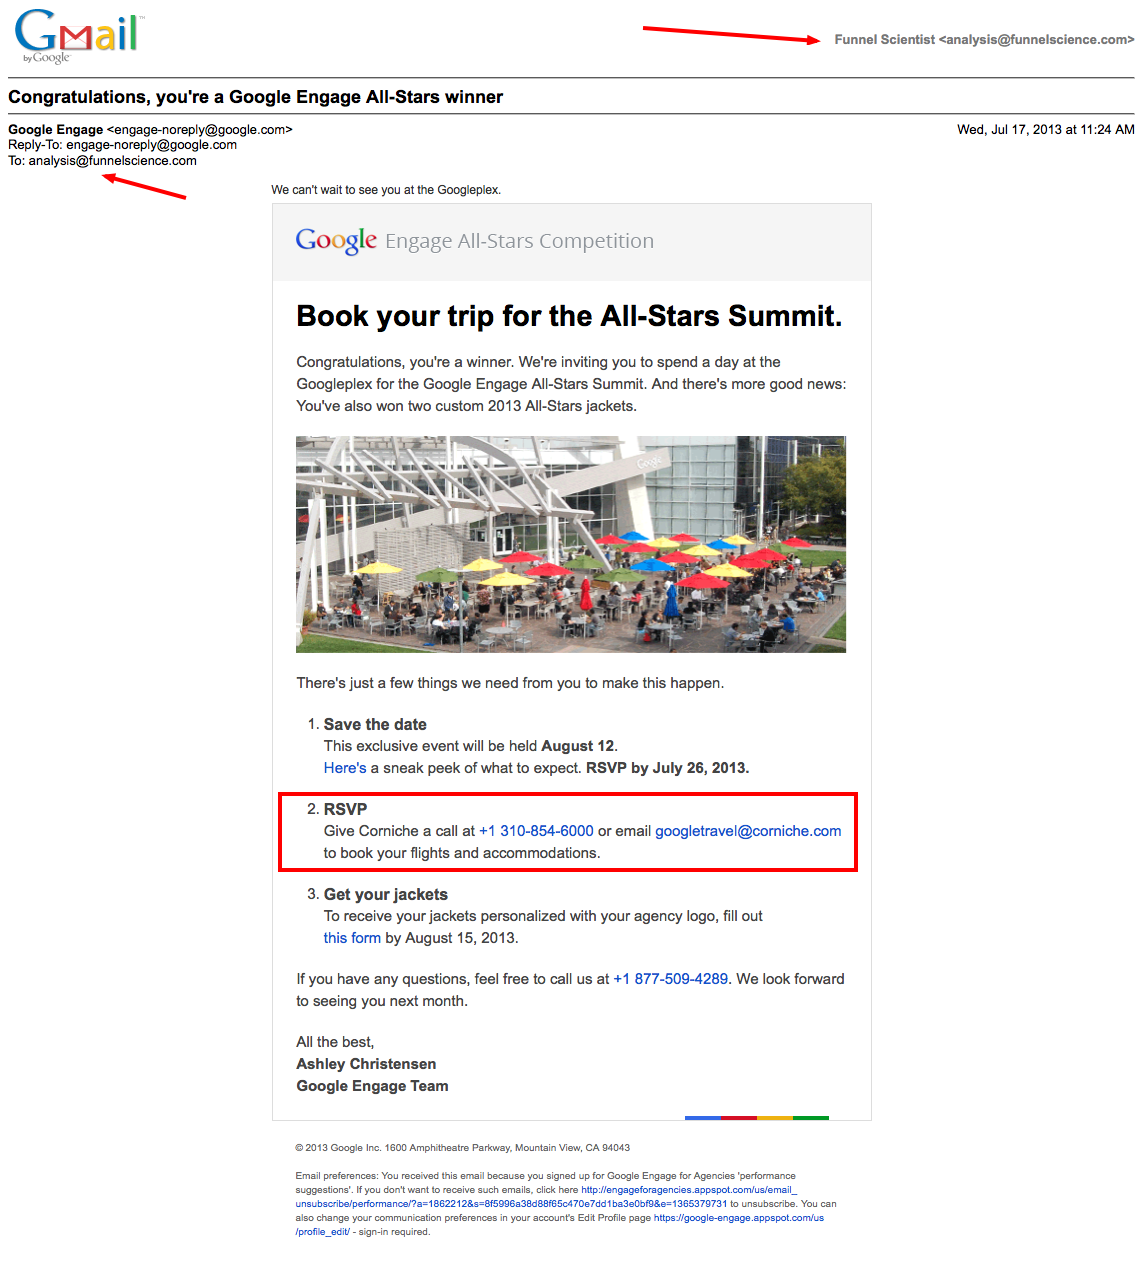 Funnel Science Internet Marketing - Congratulations, you're a Google Engage All-Stars winner 2013-07-17